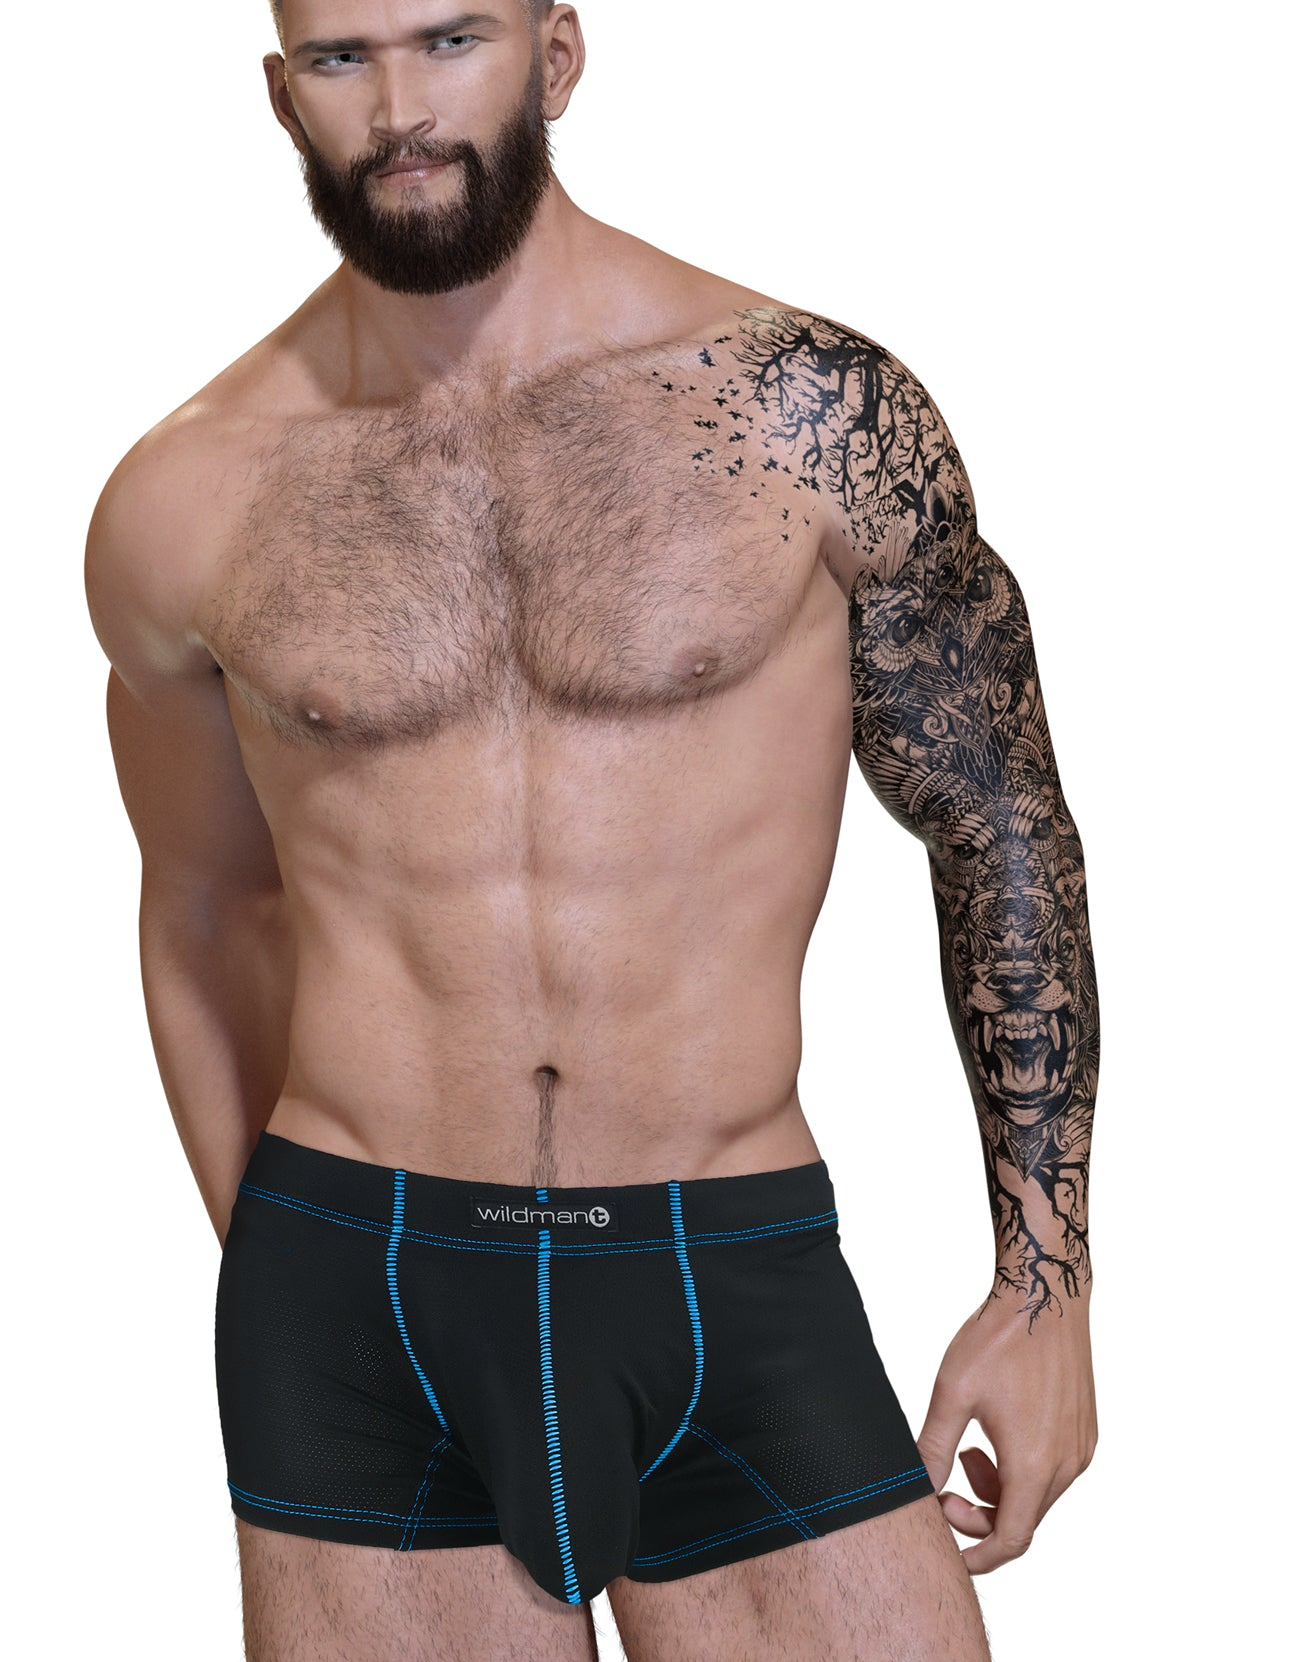 Stitch Big Boy Pouch Boxer Brief Blue - Big Penis Underwear, WildmanT - WildmanT